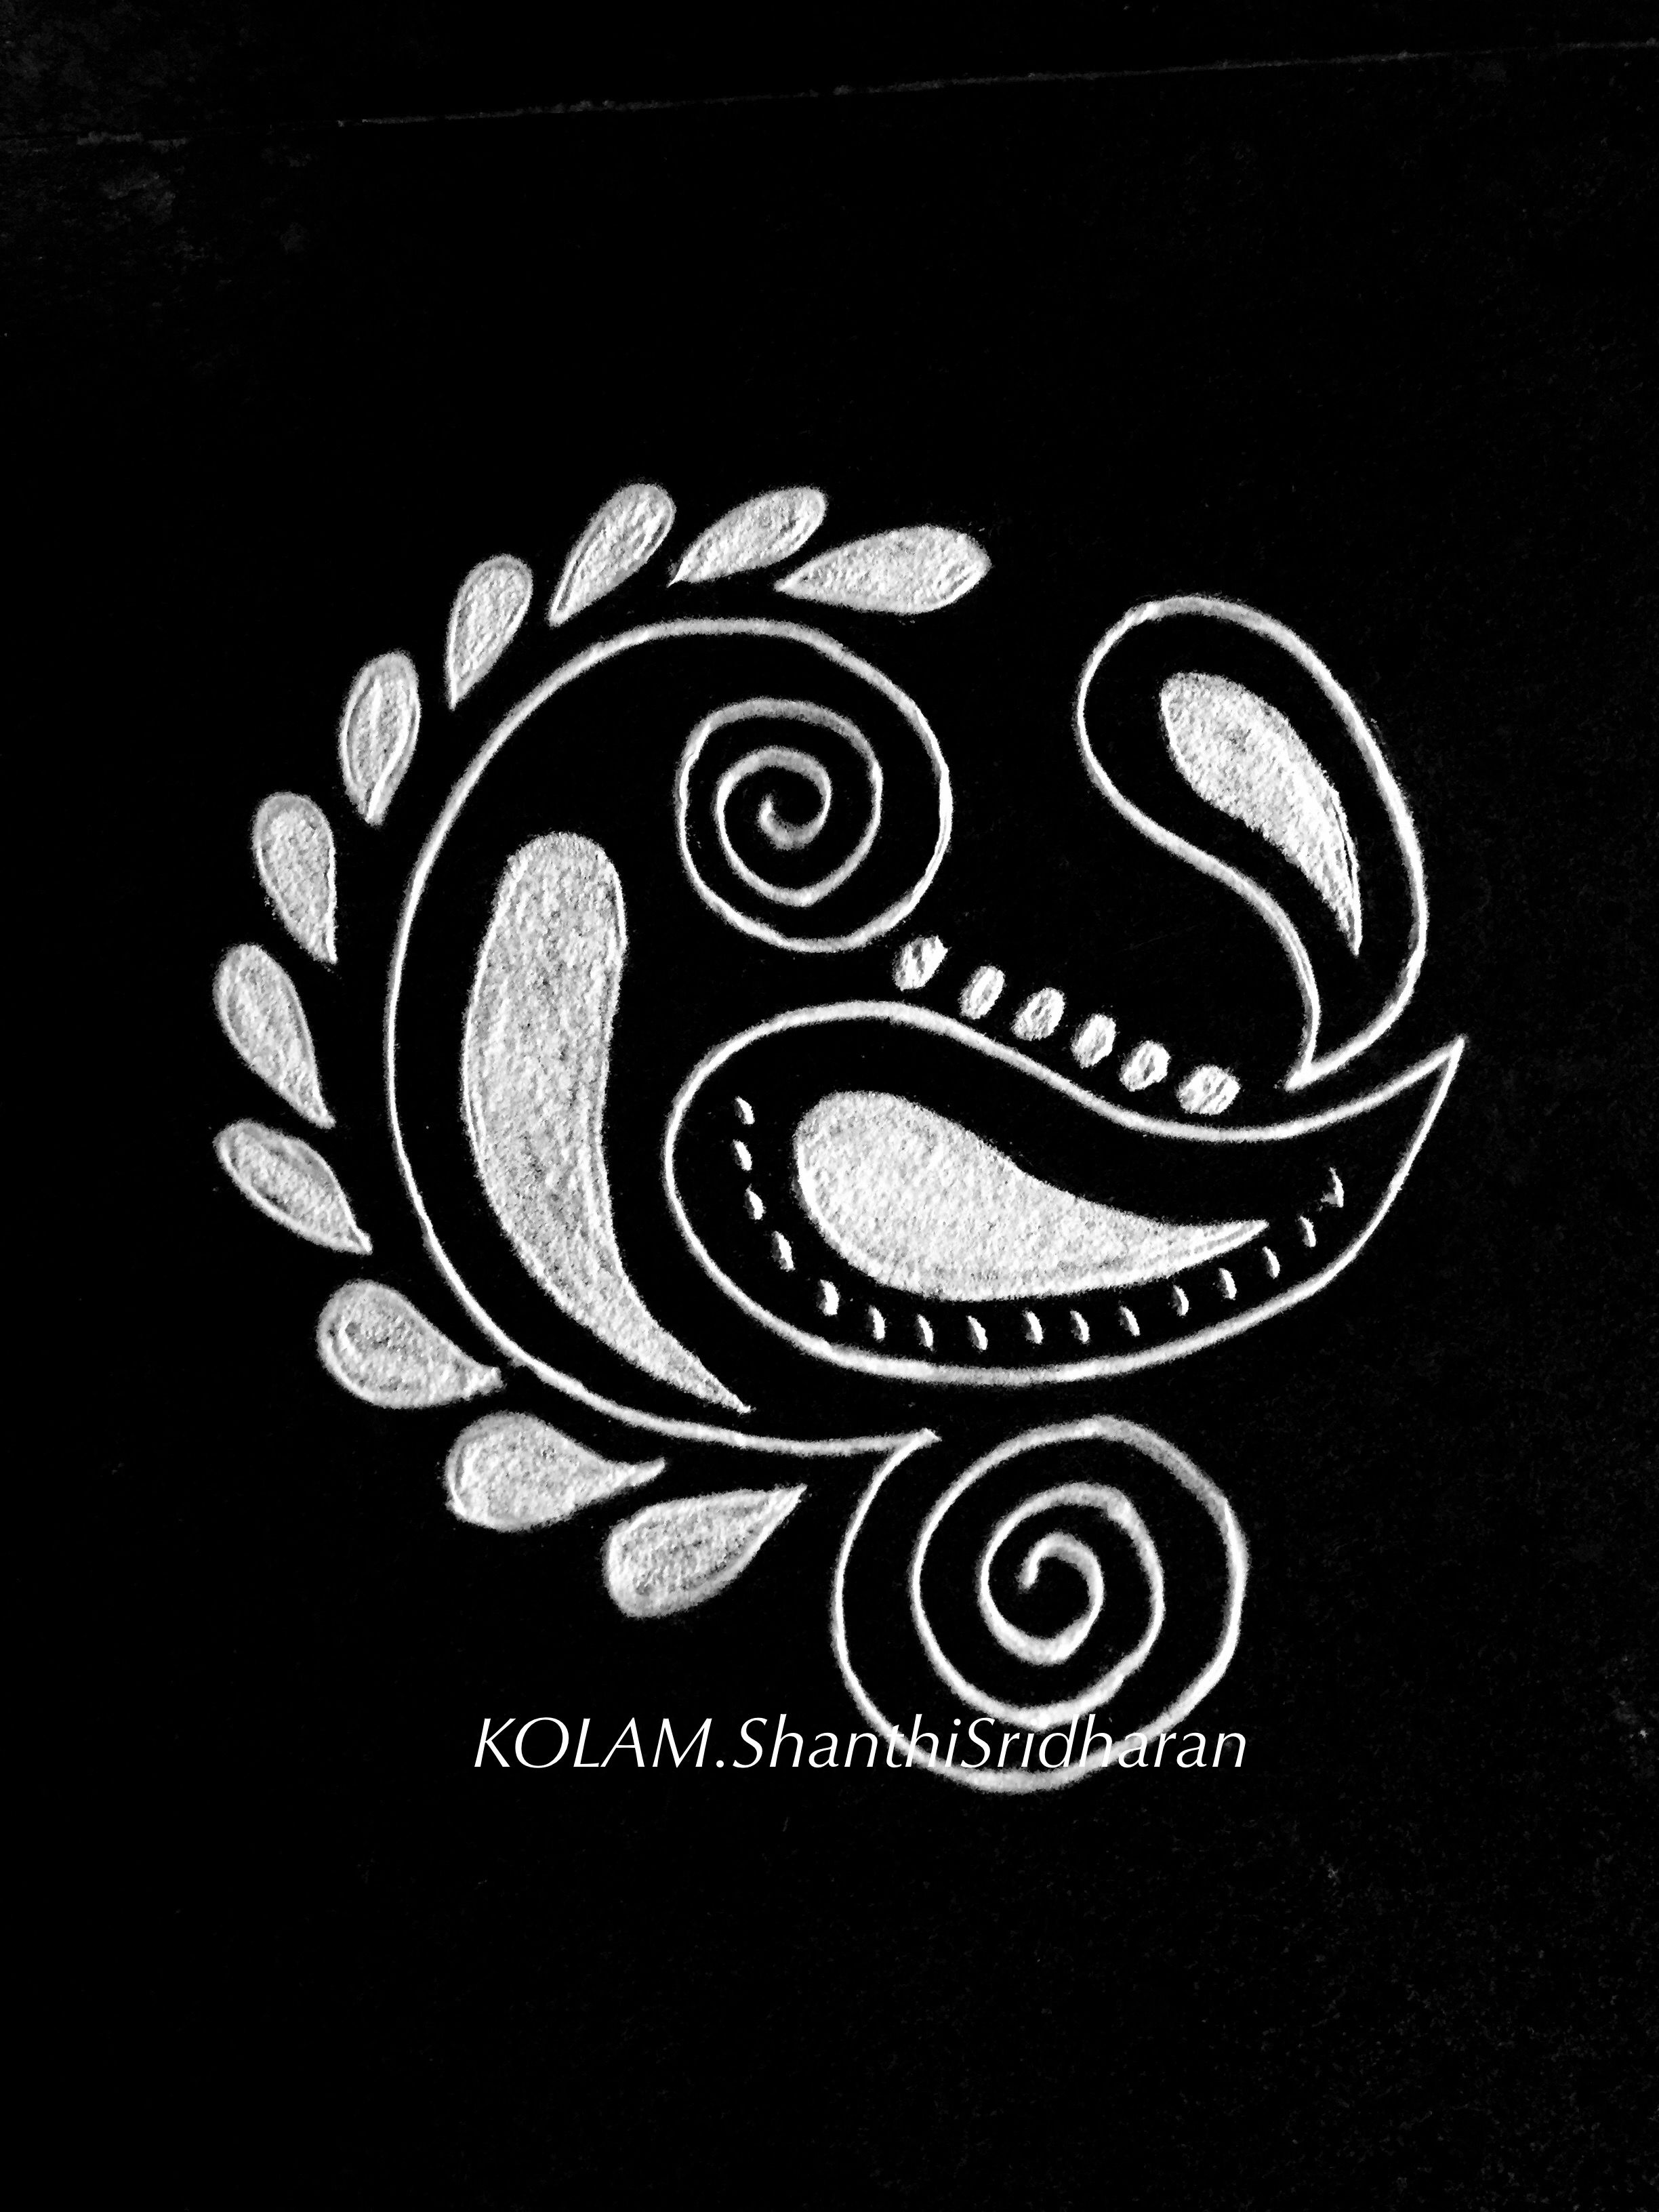 Diwali Black And White Pictures Pin By Shanthi Sridharan Kolam On Black And White Kolam